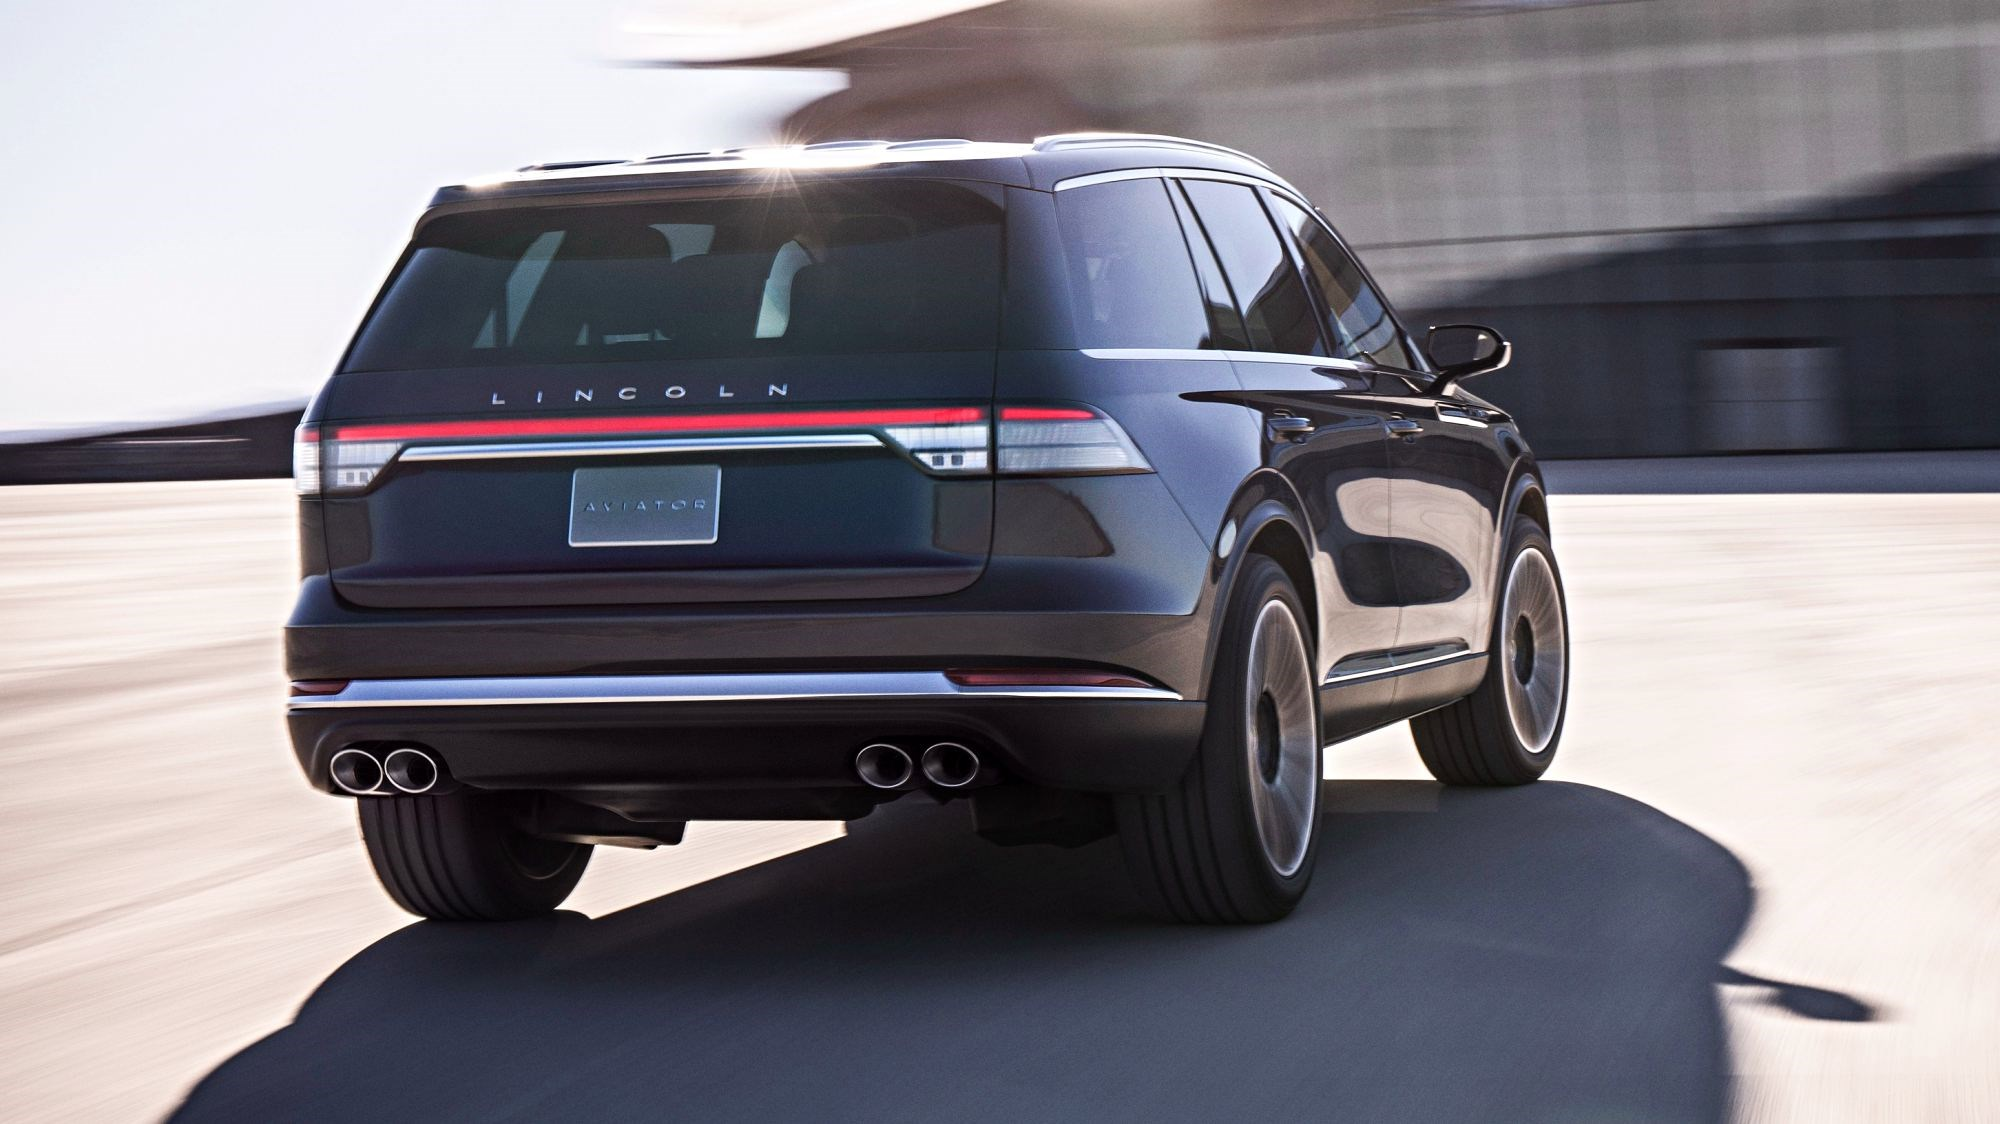 Lincoln Previews All-New Aviator In NYC, An SUV Beauty Thumbnail